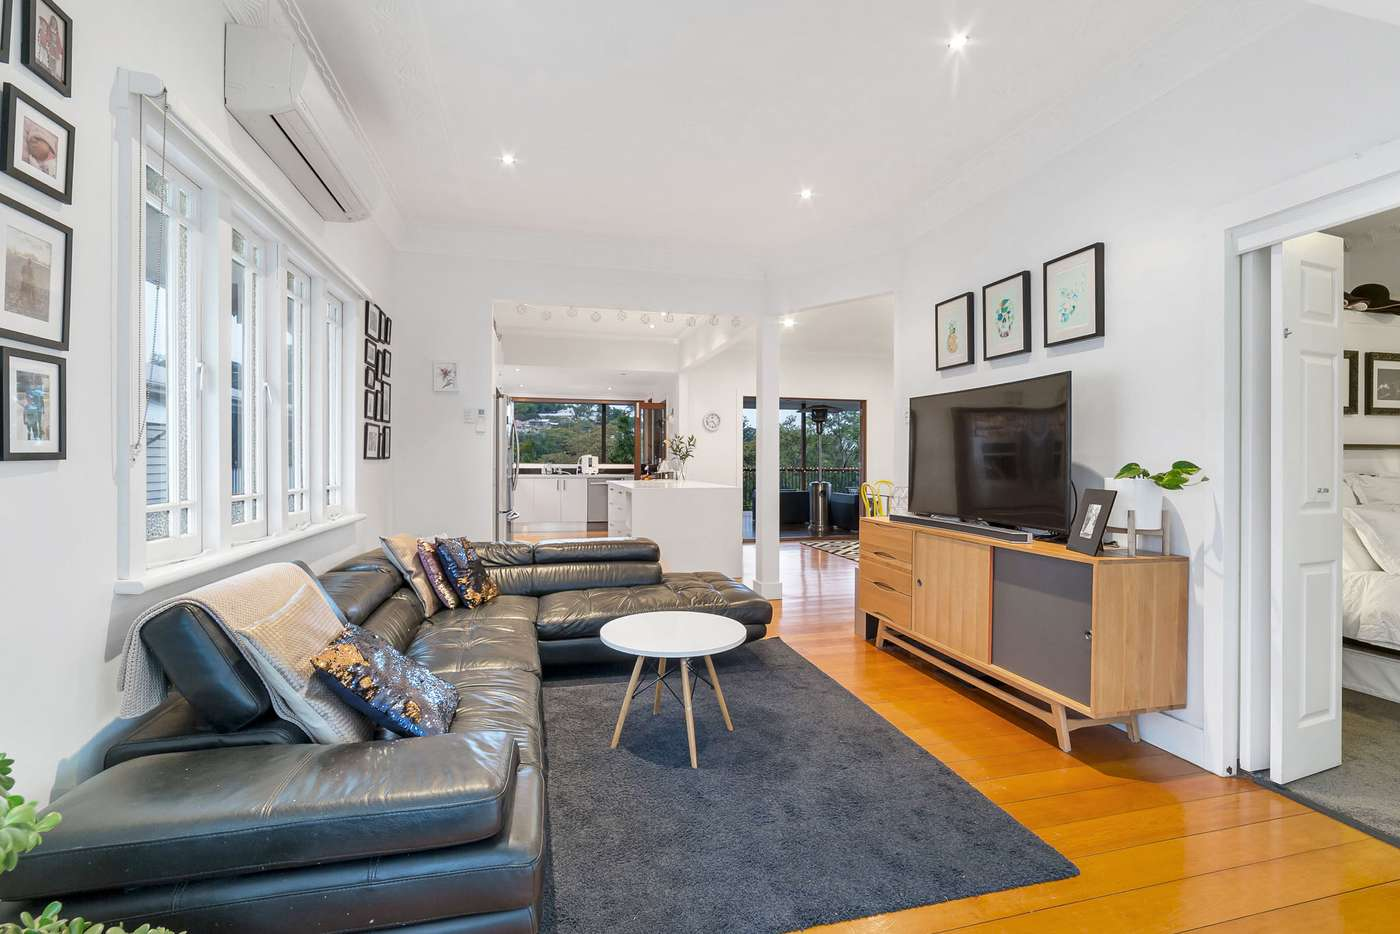 Sixth view of Homely house listing, 15 Lind Street, Newmarket QLD 4051